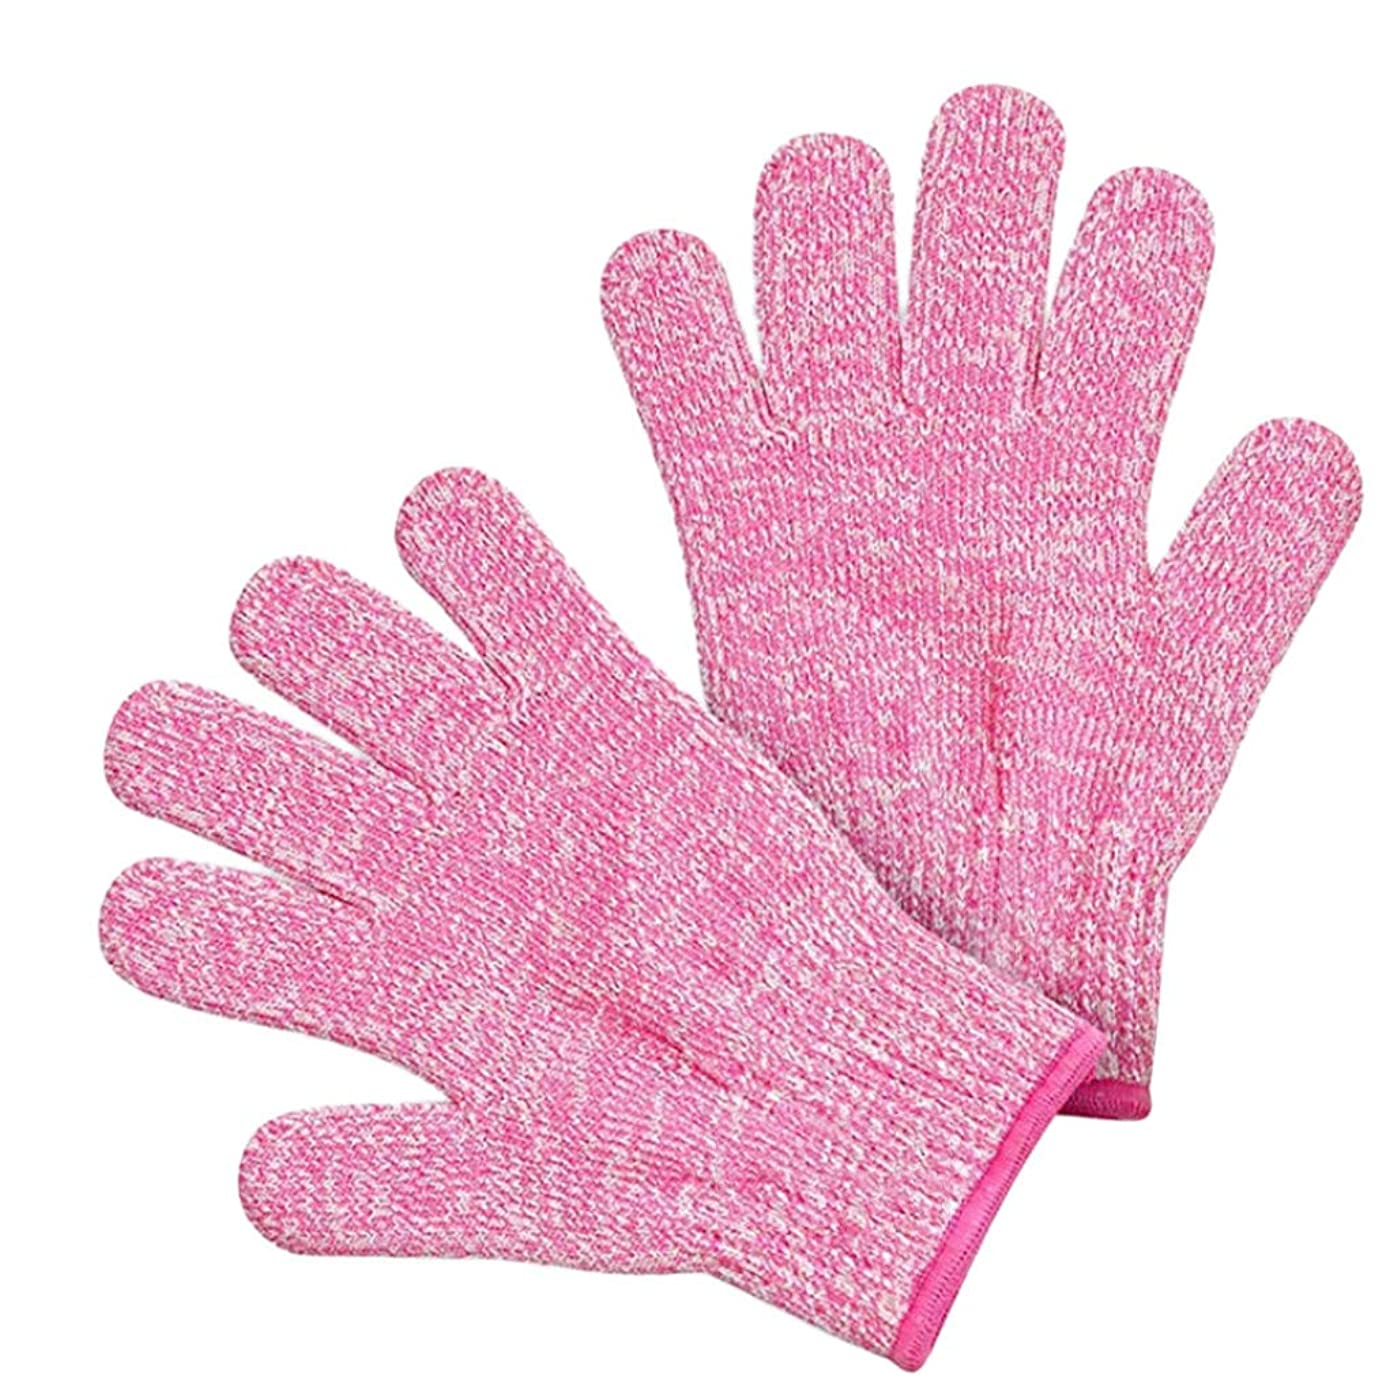 ?Rendodon? Kitchen Tools, Food Storage, Cut Resistant Gloves, Small Adult Anti Cut Gloves Maximum Kids Cooking Protection (Pink, S)